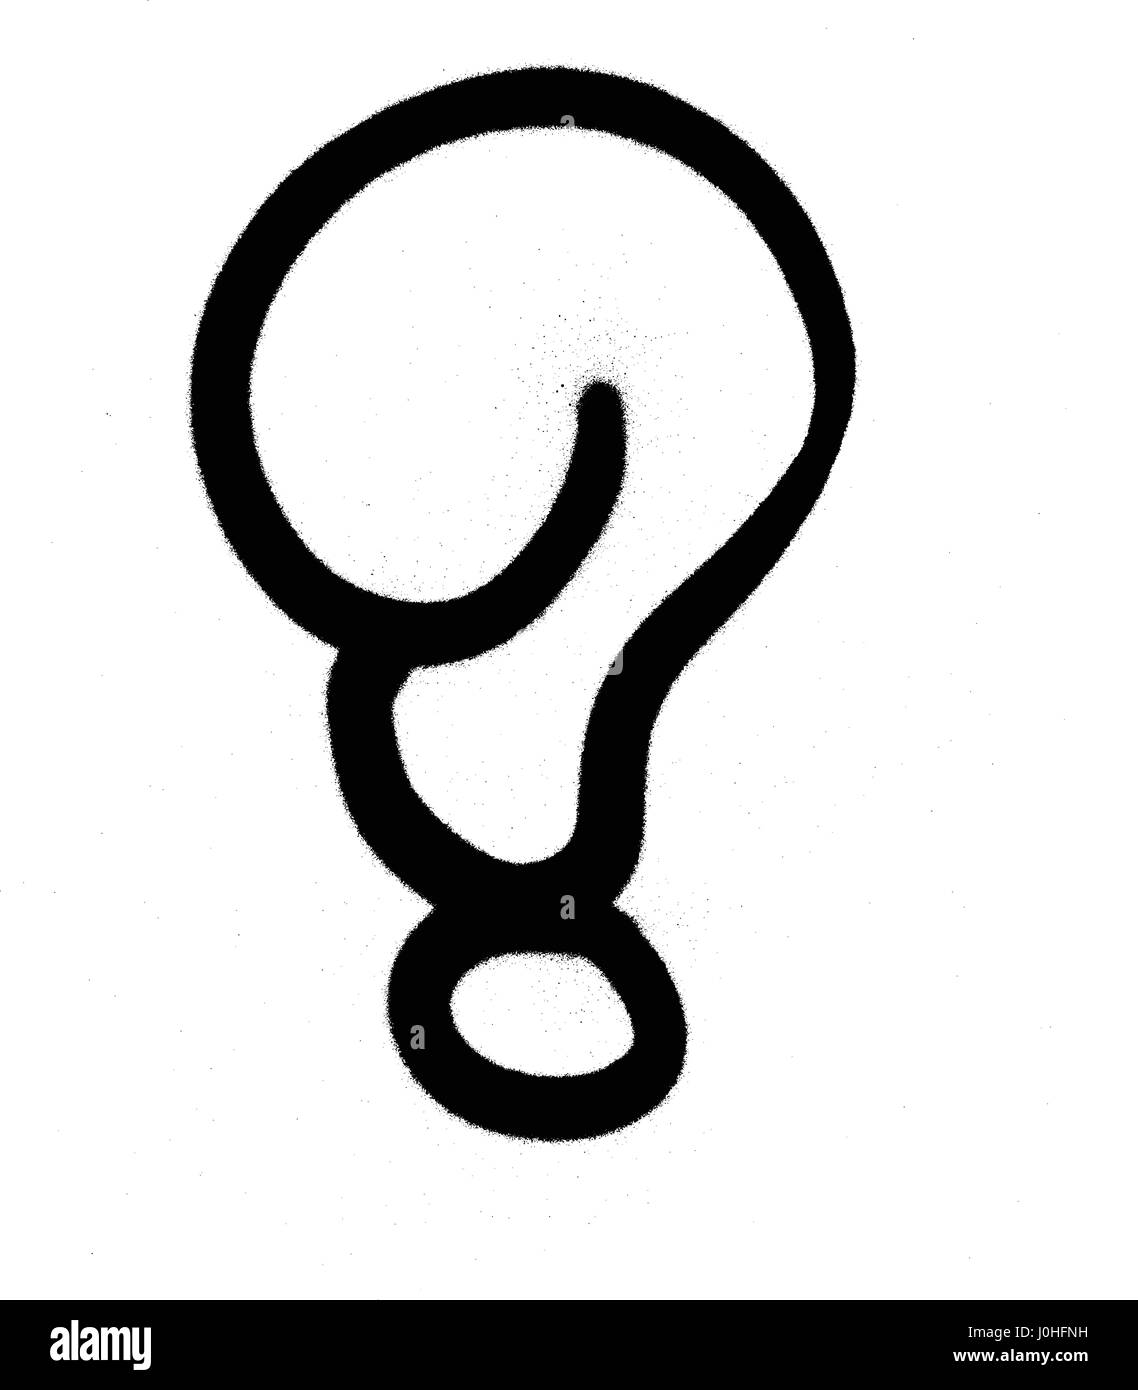 Graffiti Bubble Question Mark In Black On White Stock